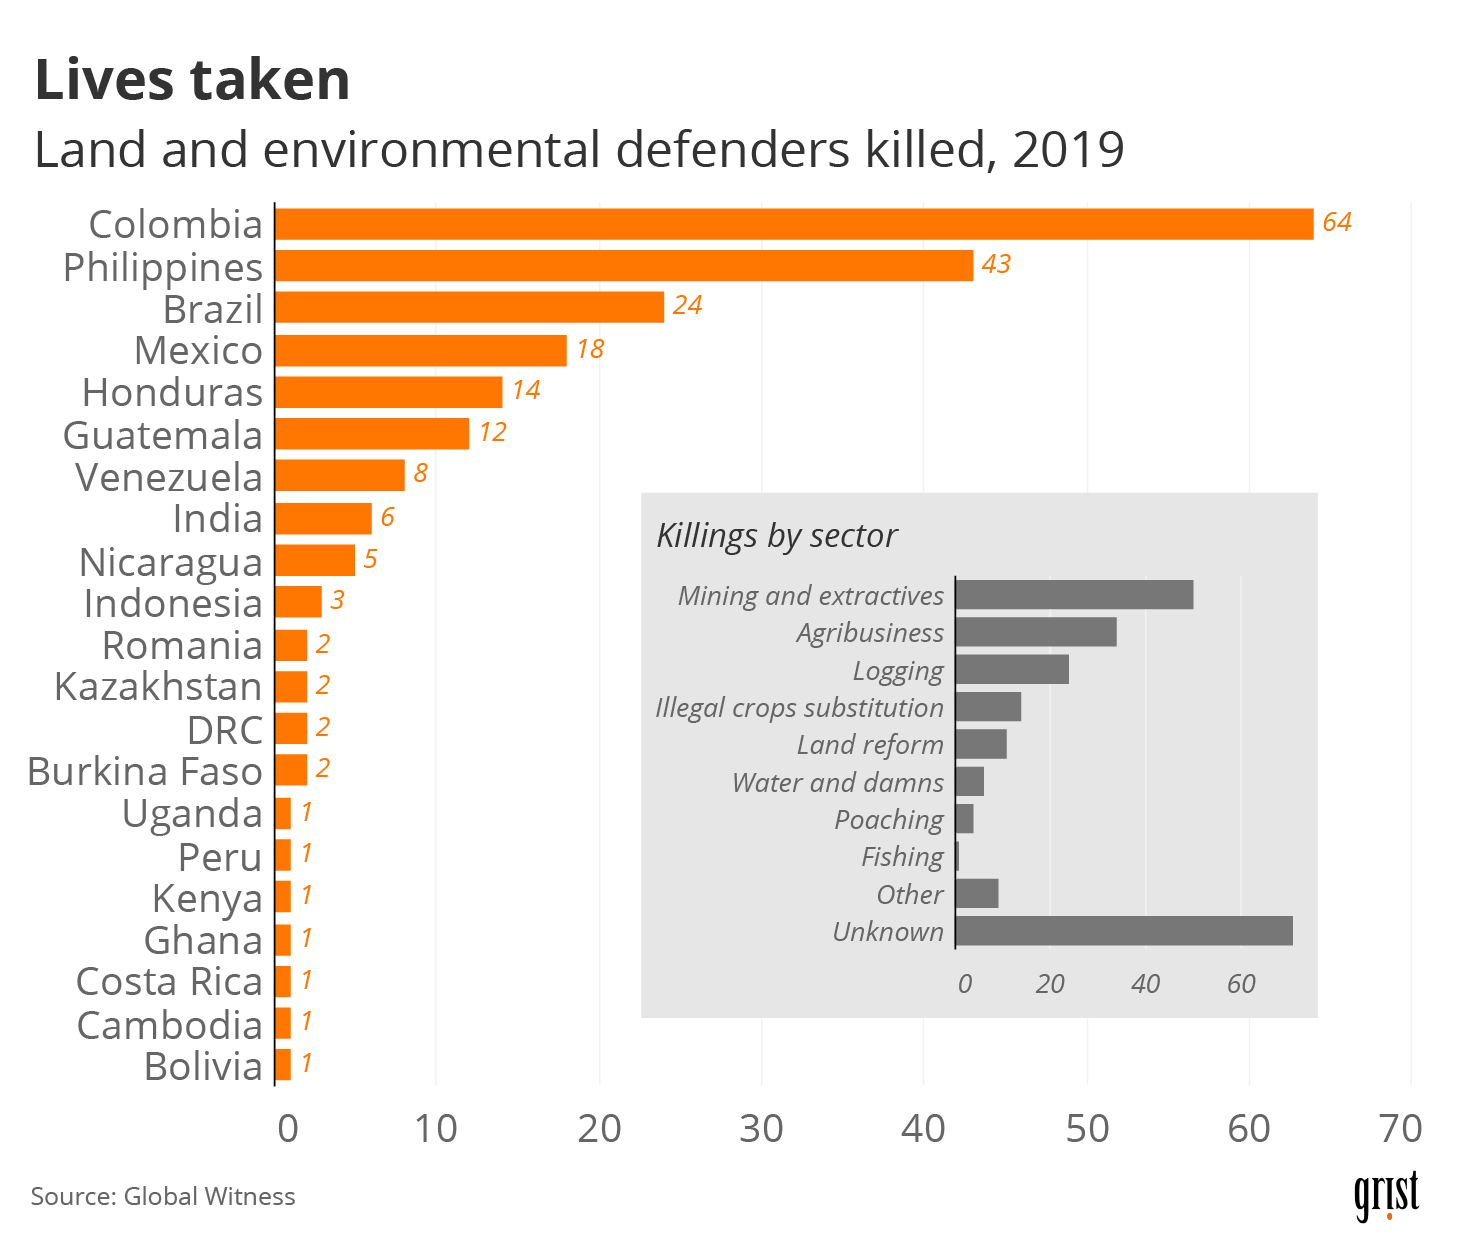 A bar chart showing the count of land and environmental defenders killed in 2019. Colombia saw the greatest number killed, at 64. An inset bar chart breaks down the killings by sector. Mining and extractives accounts for the largest known sector.